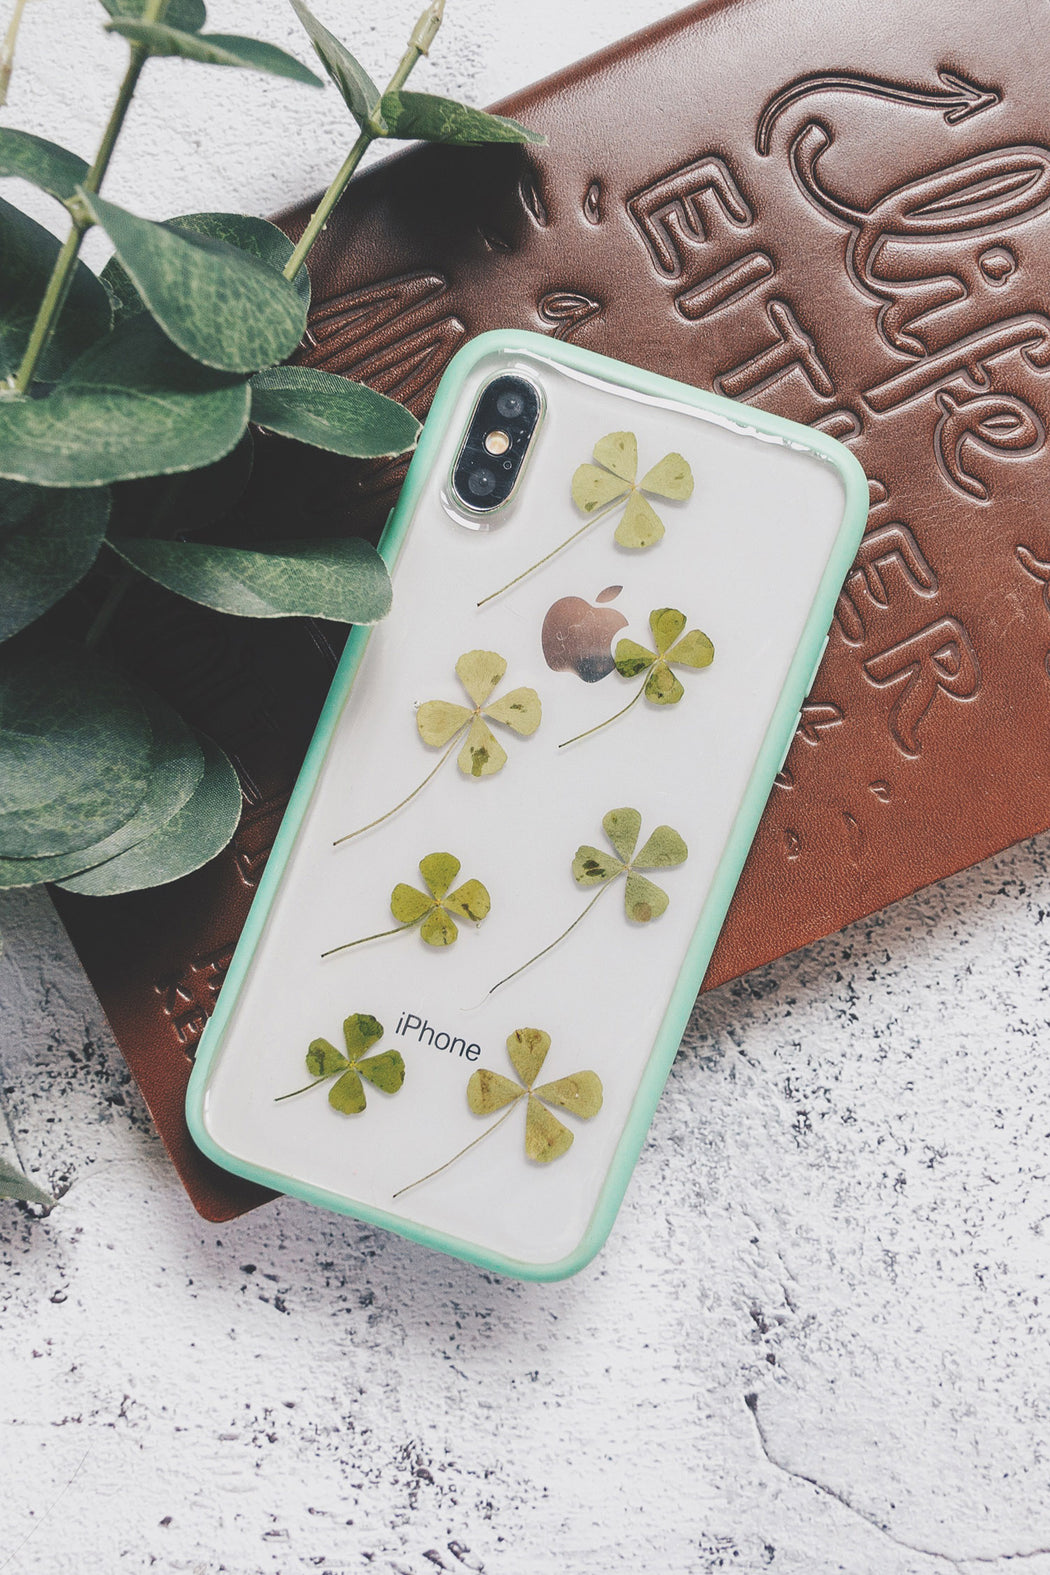 pressed flower green fern leaf cute protective floral iphone 6 6s plus bumper case moss floral neverland floralfy